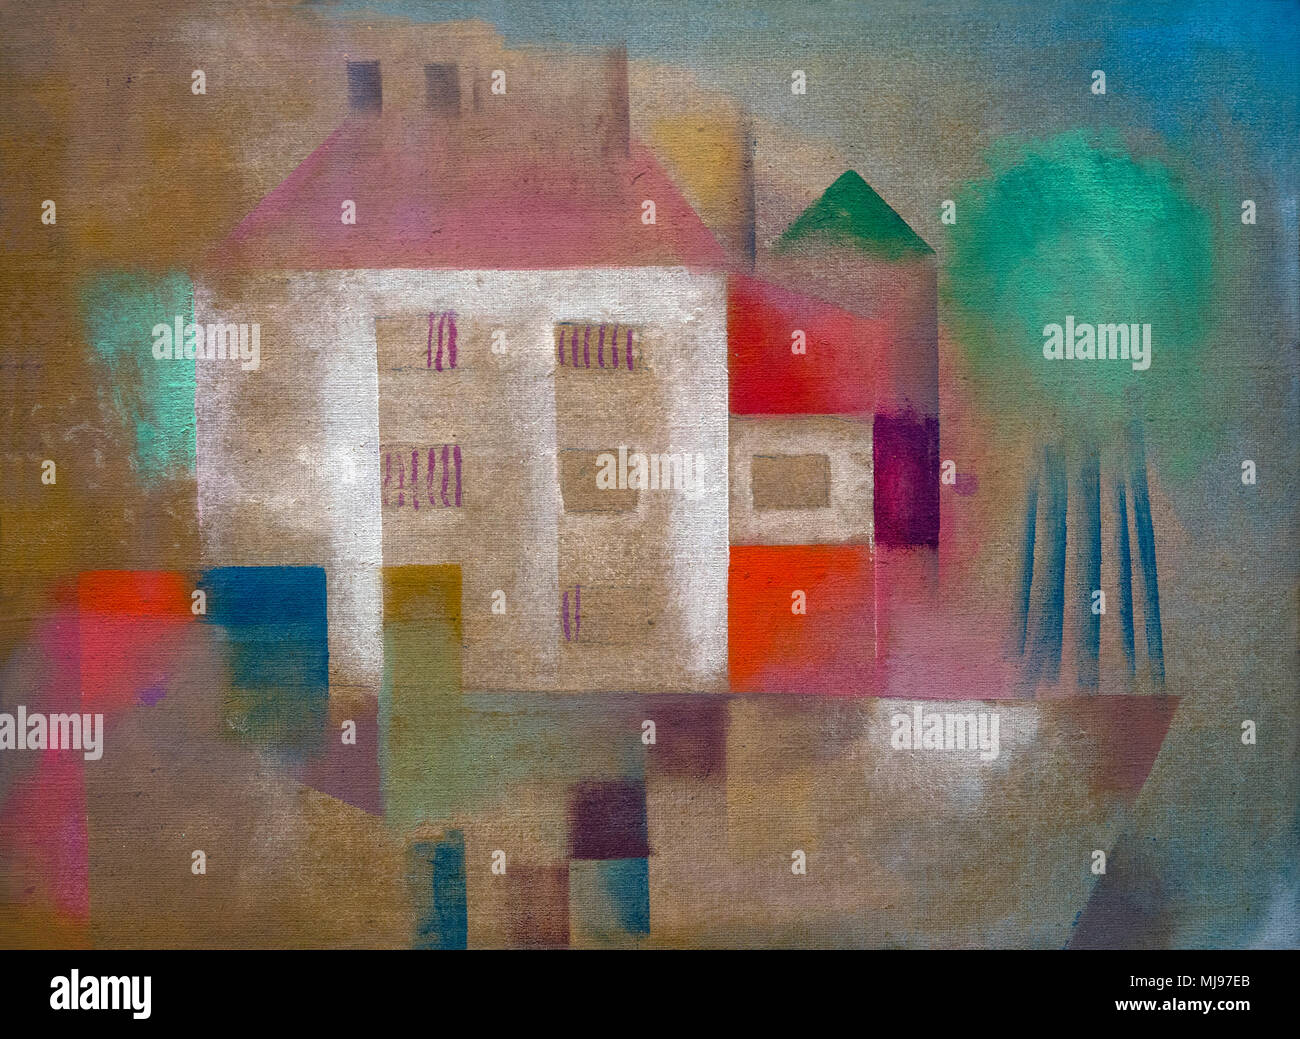 New House in the Suburbs, Paul Klee, 1924, National Gallery of Art, Washington DC, USA, North America - Stock Image